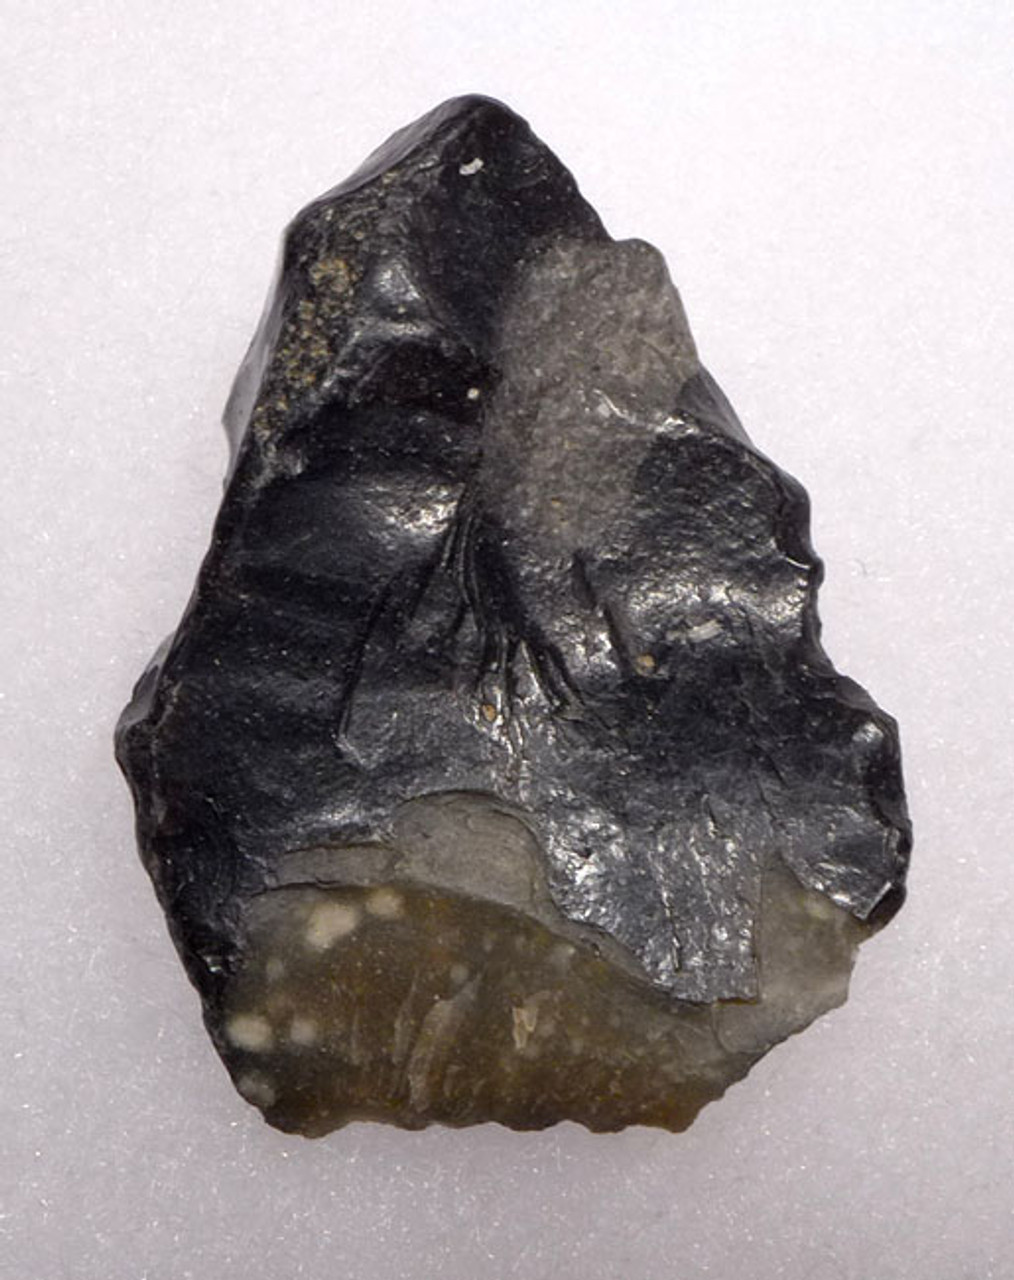 CL002 - RARE CLACTONIAN FLINT FLAKE SCRAPER TOOL FROM NORTH EUROPE MADE BY HOMO ERECTUS